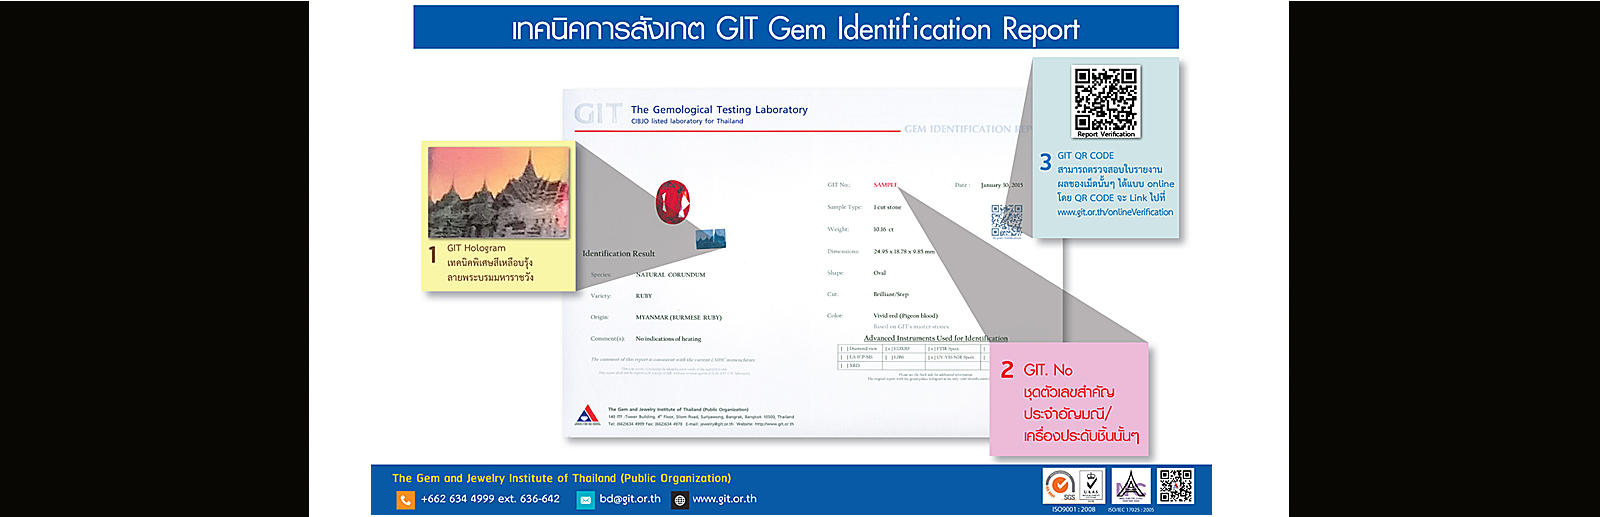 How to Identify Genuine GIT Identification Report